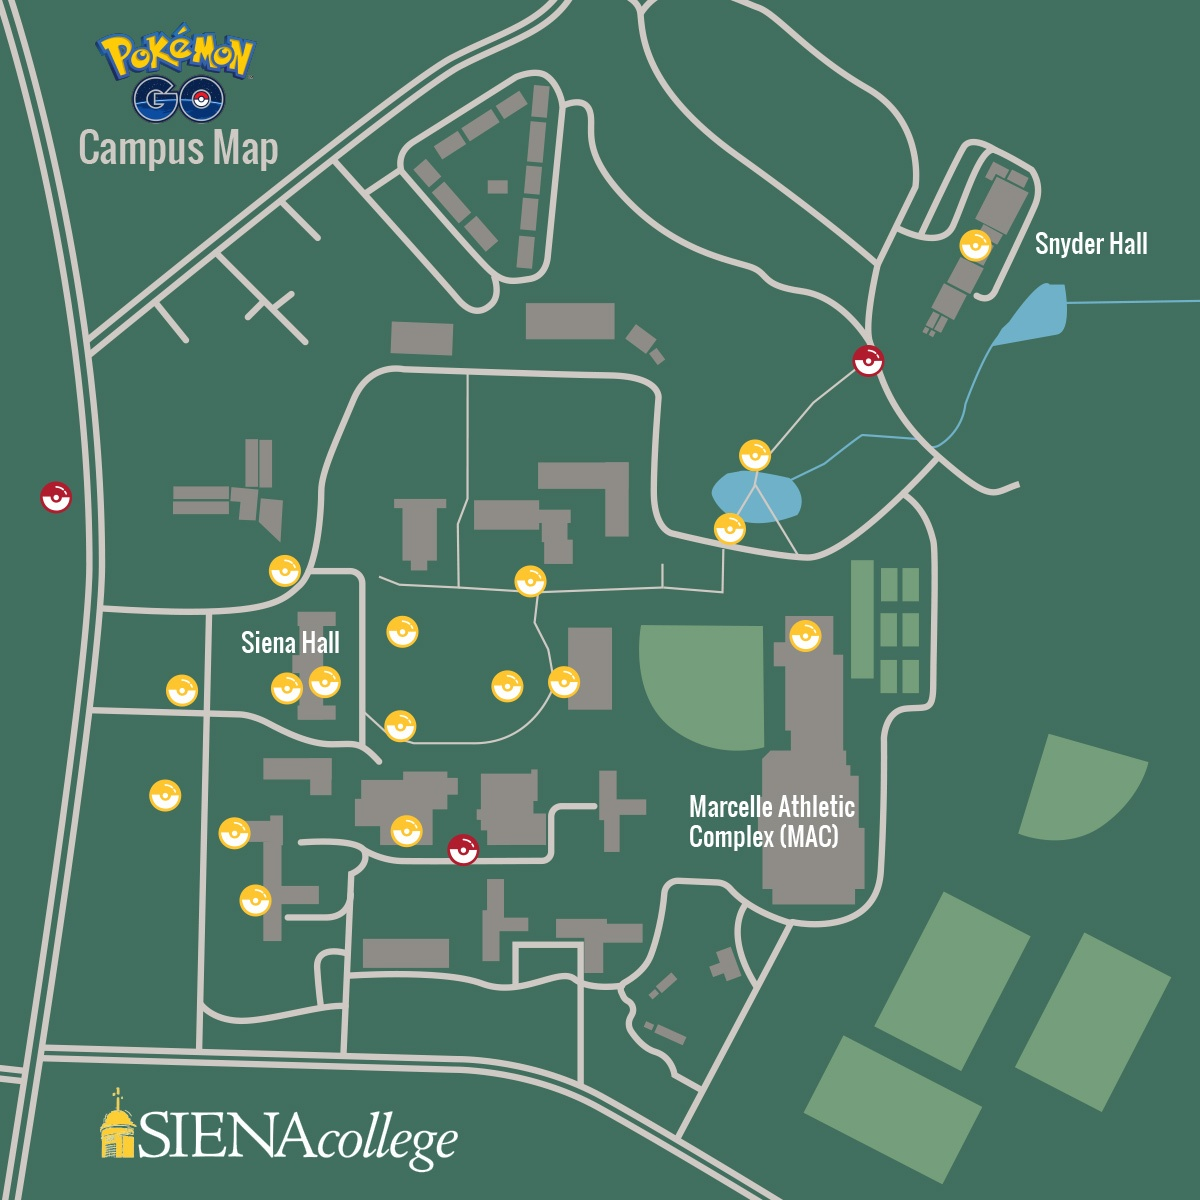 Pokemon Go at Siena Map